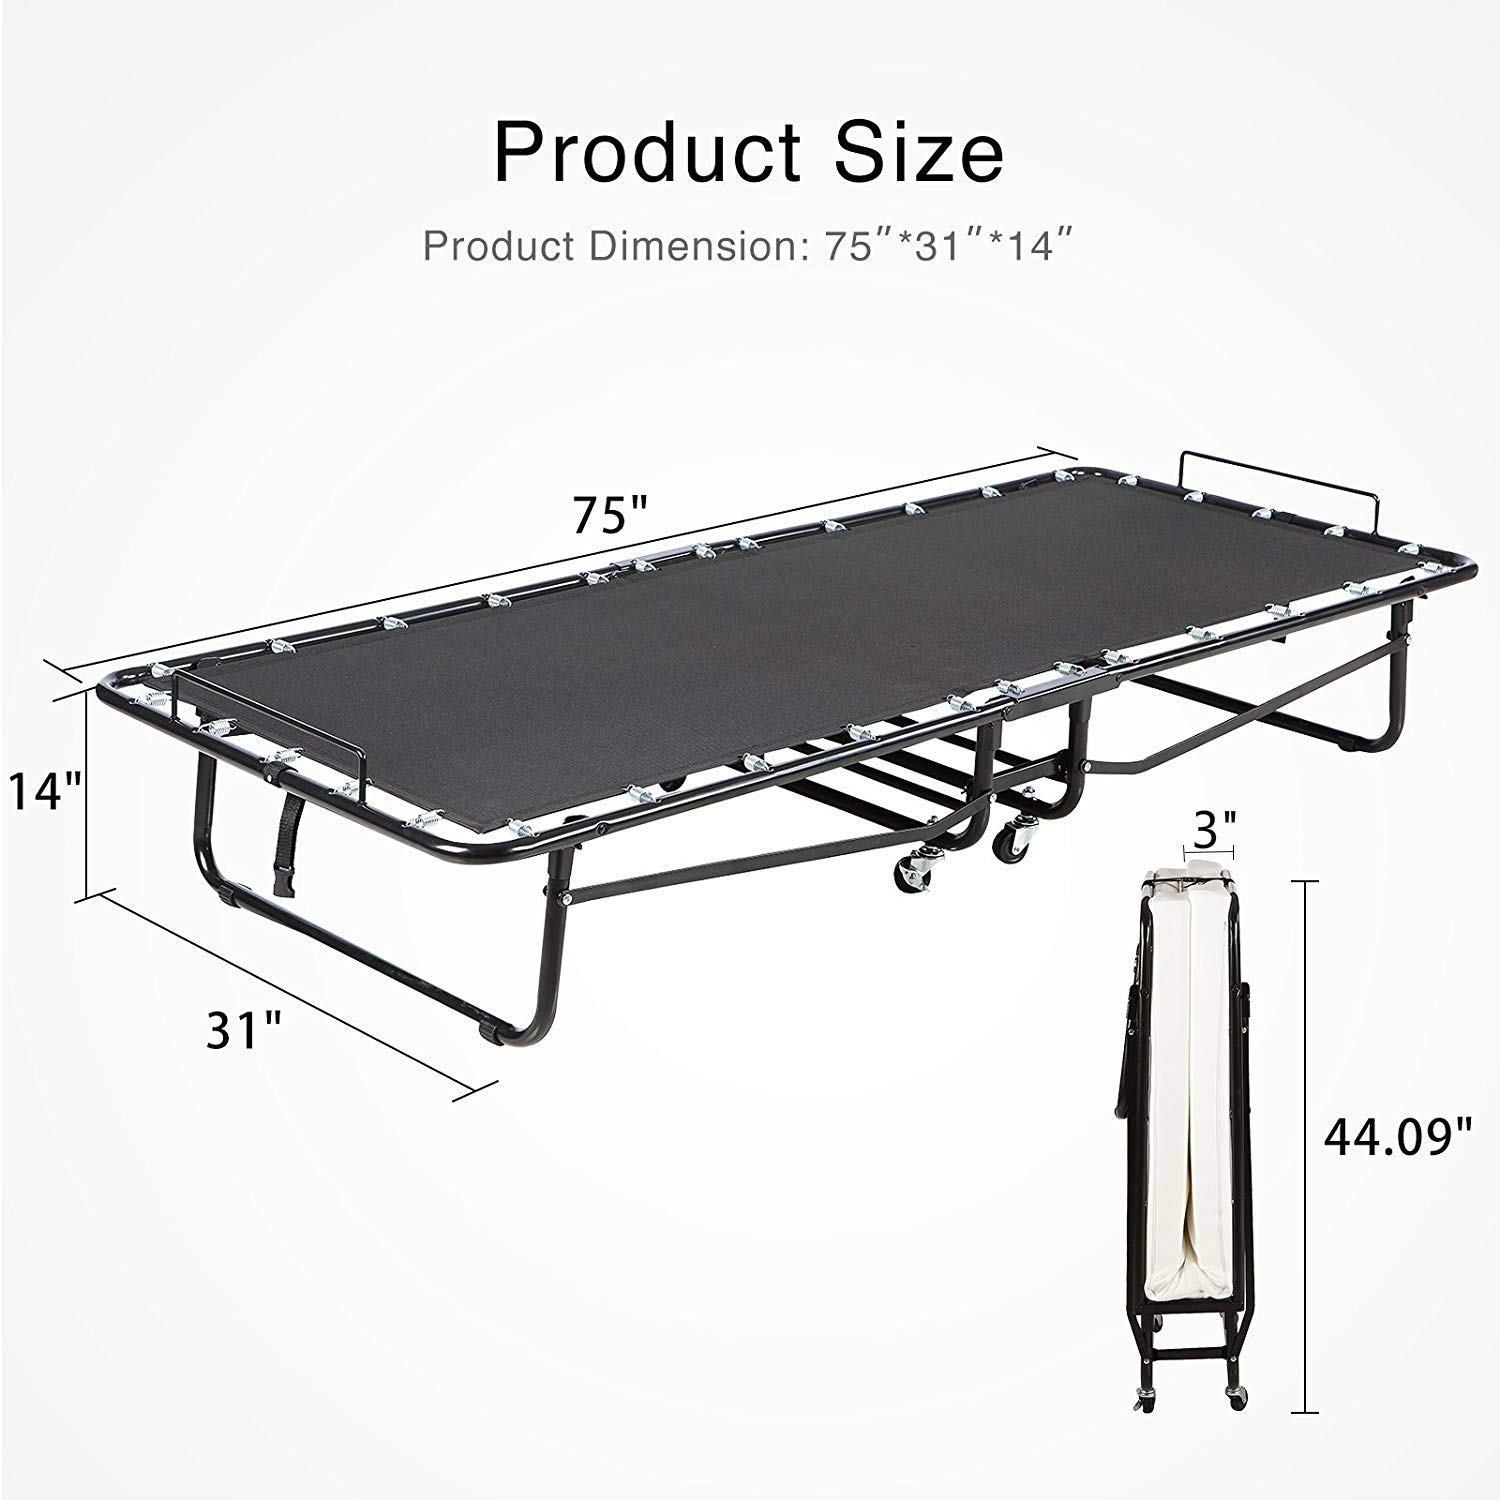 Heavy Duty Rollaway Beds For Heavy People For Big And